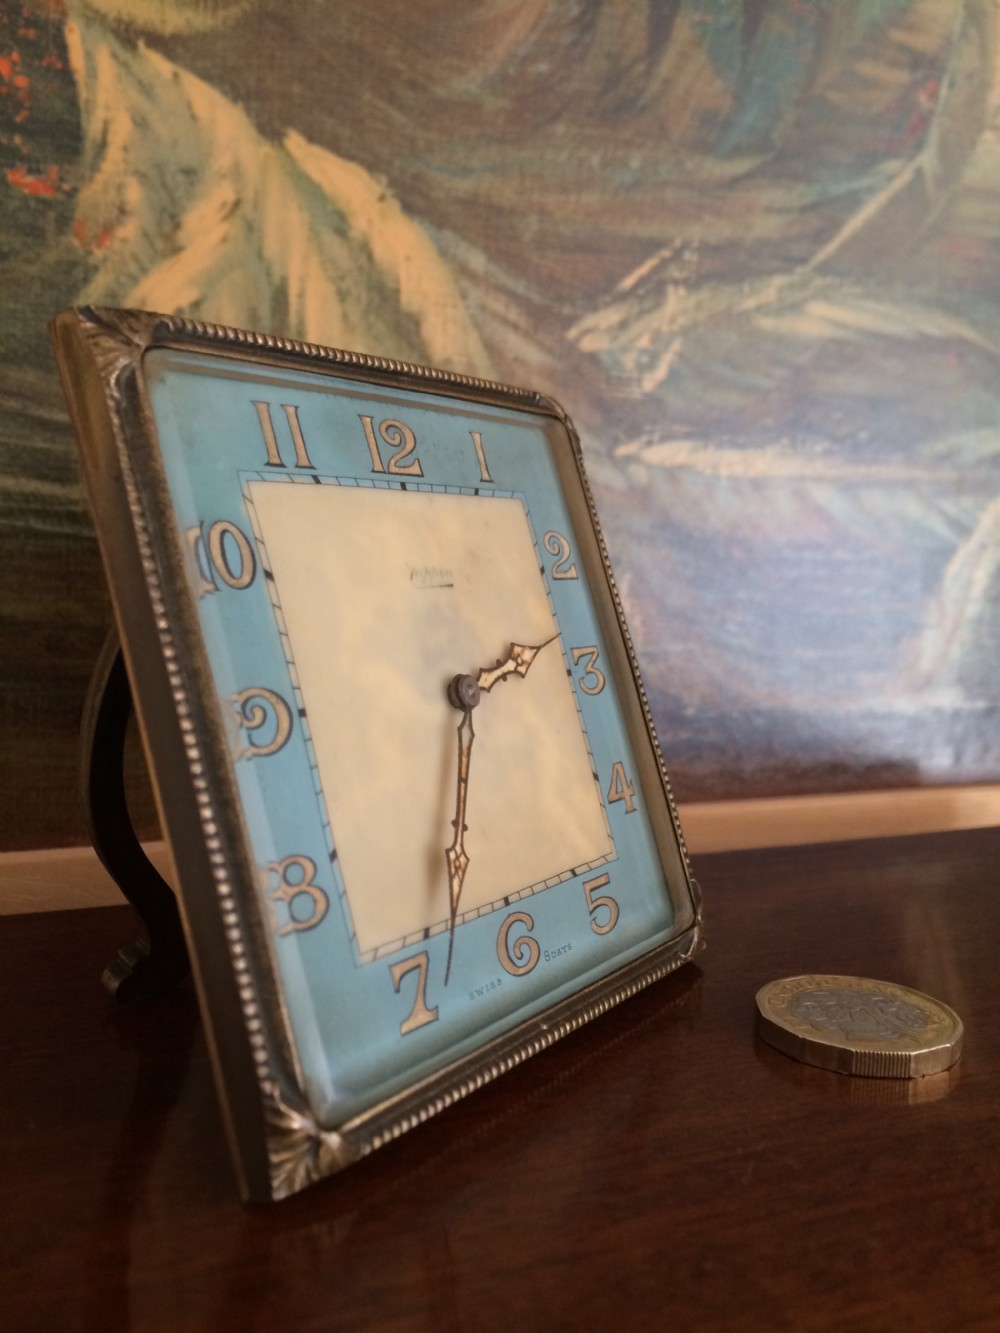 mappin 1920s clock